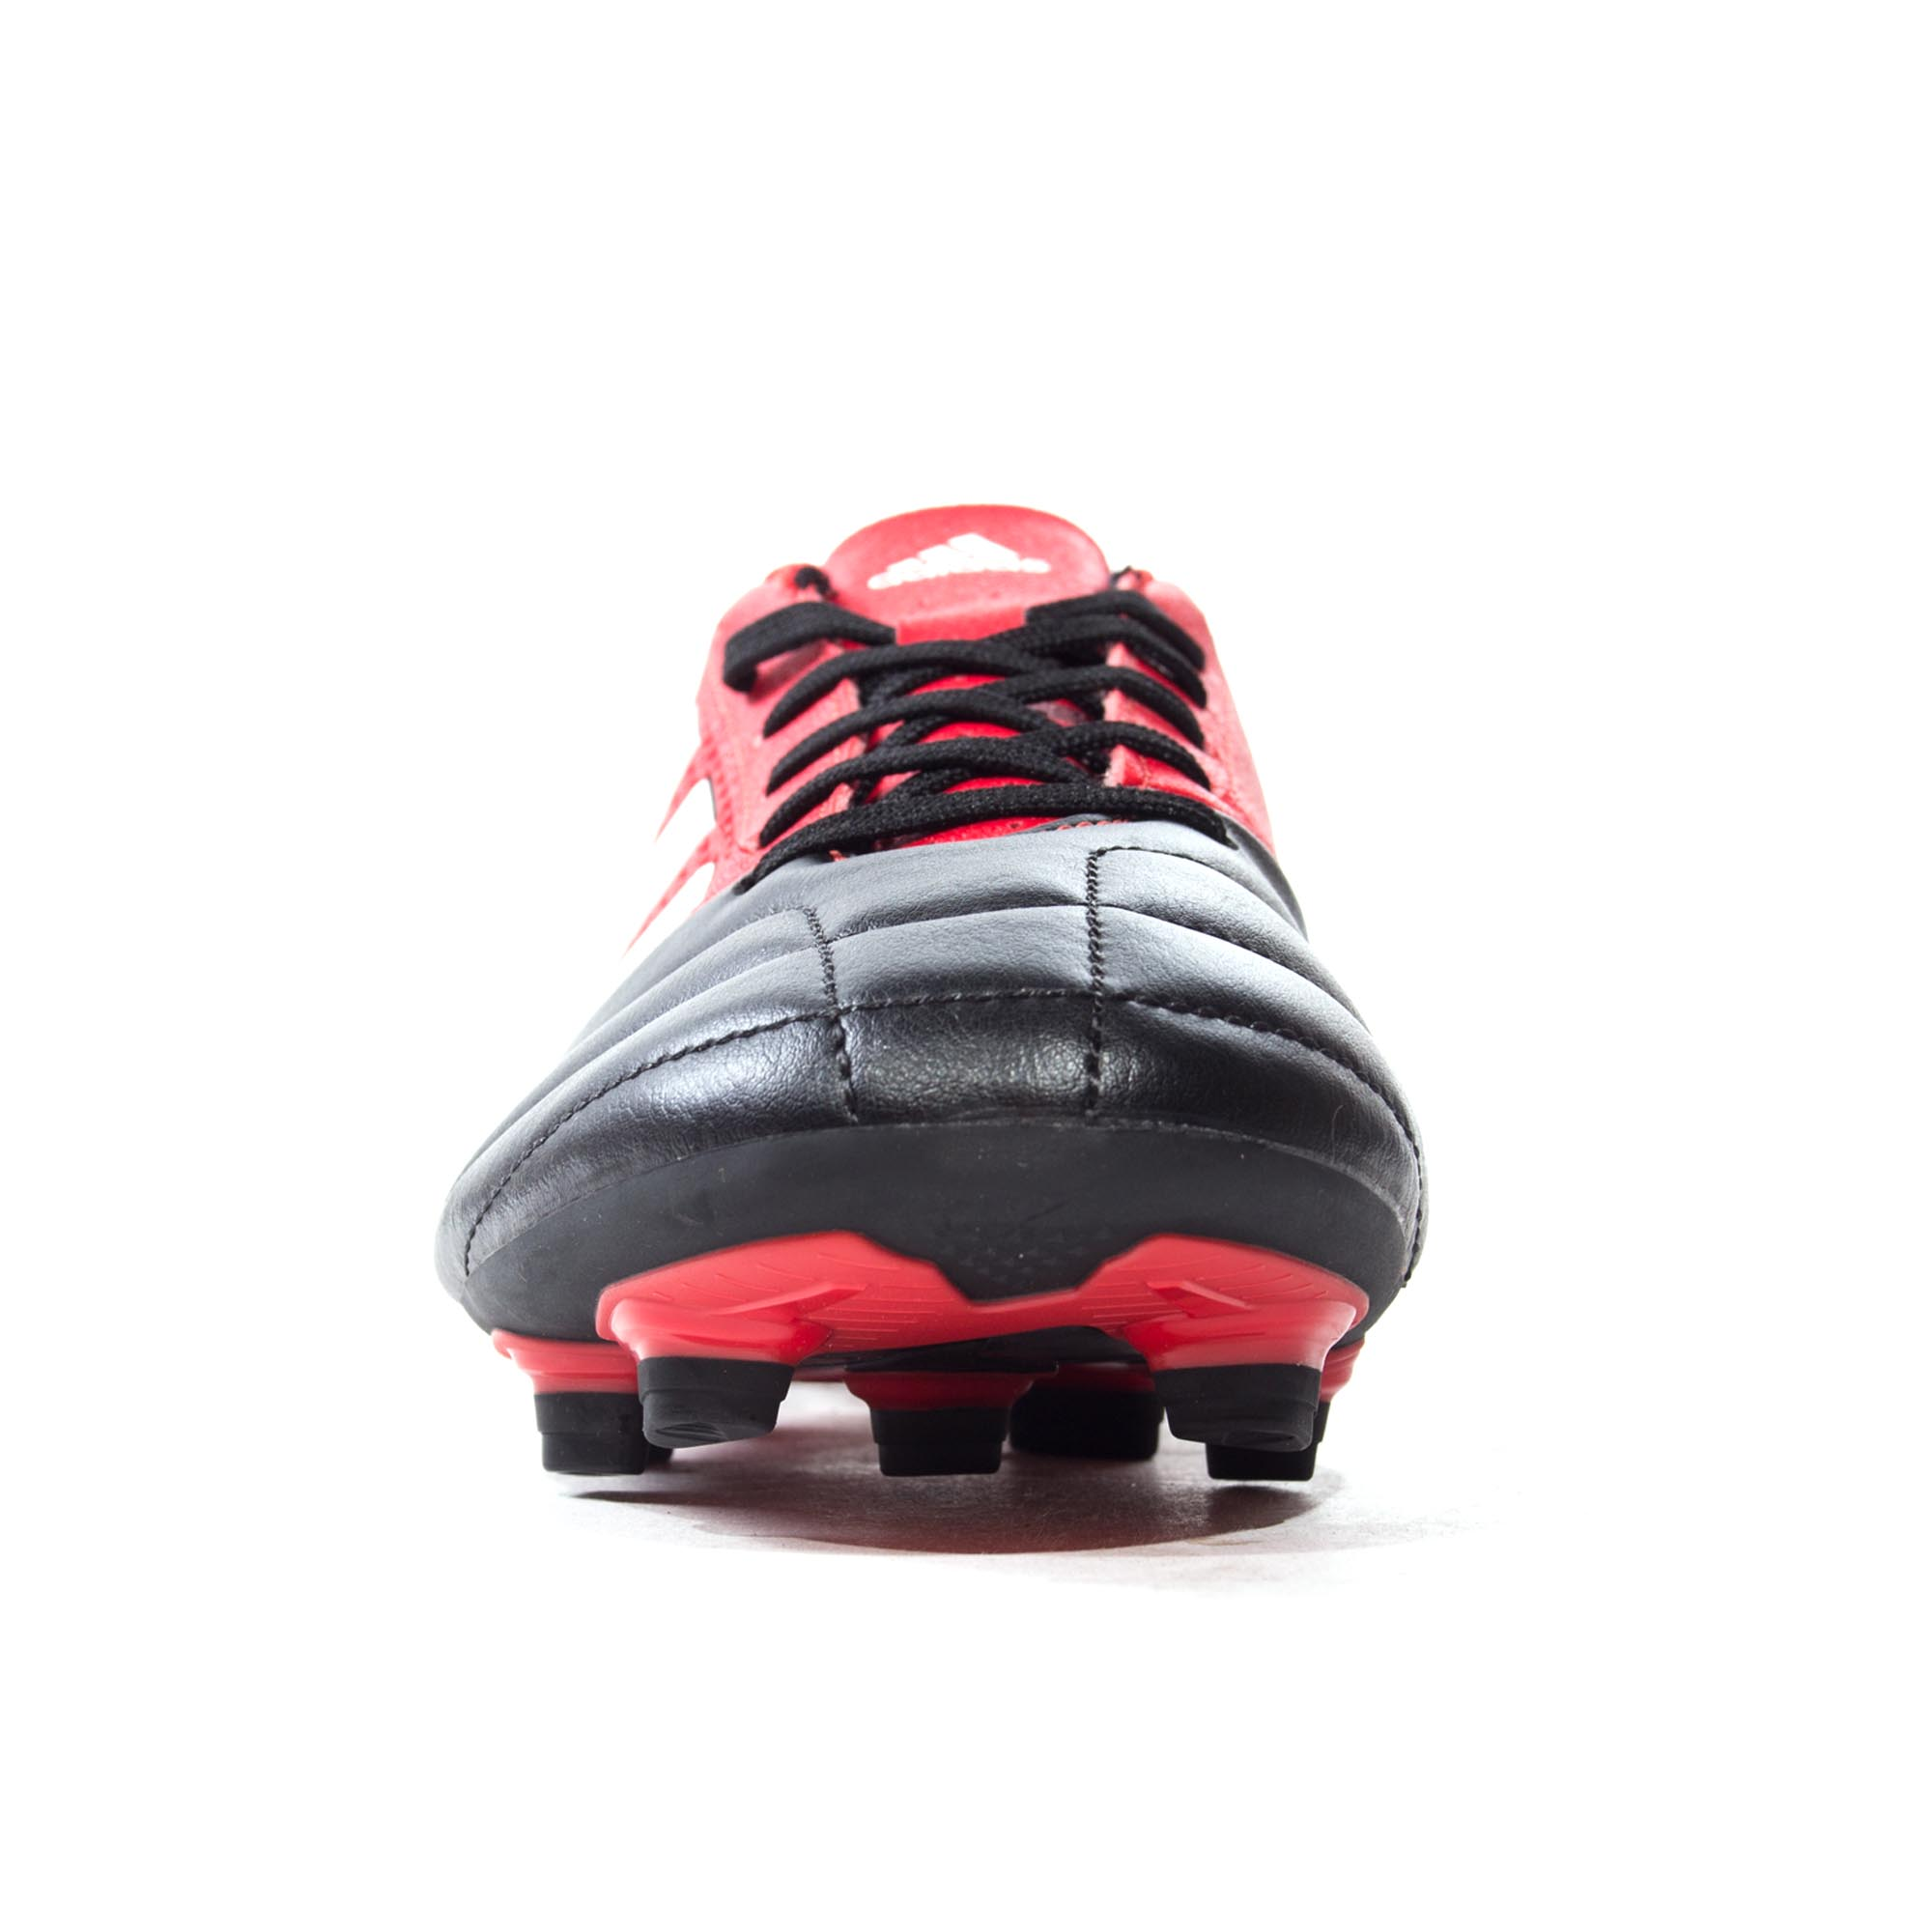 ADIDAS-ACE-17-4-FG-Firm-Ground-pour-homme-Football-Boot-Noir-Rouge miniature 9